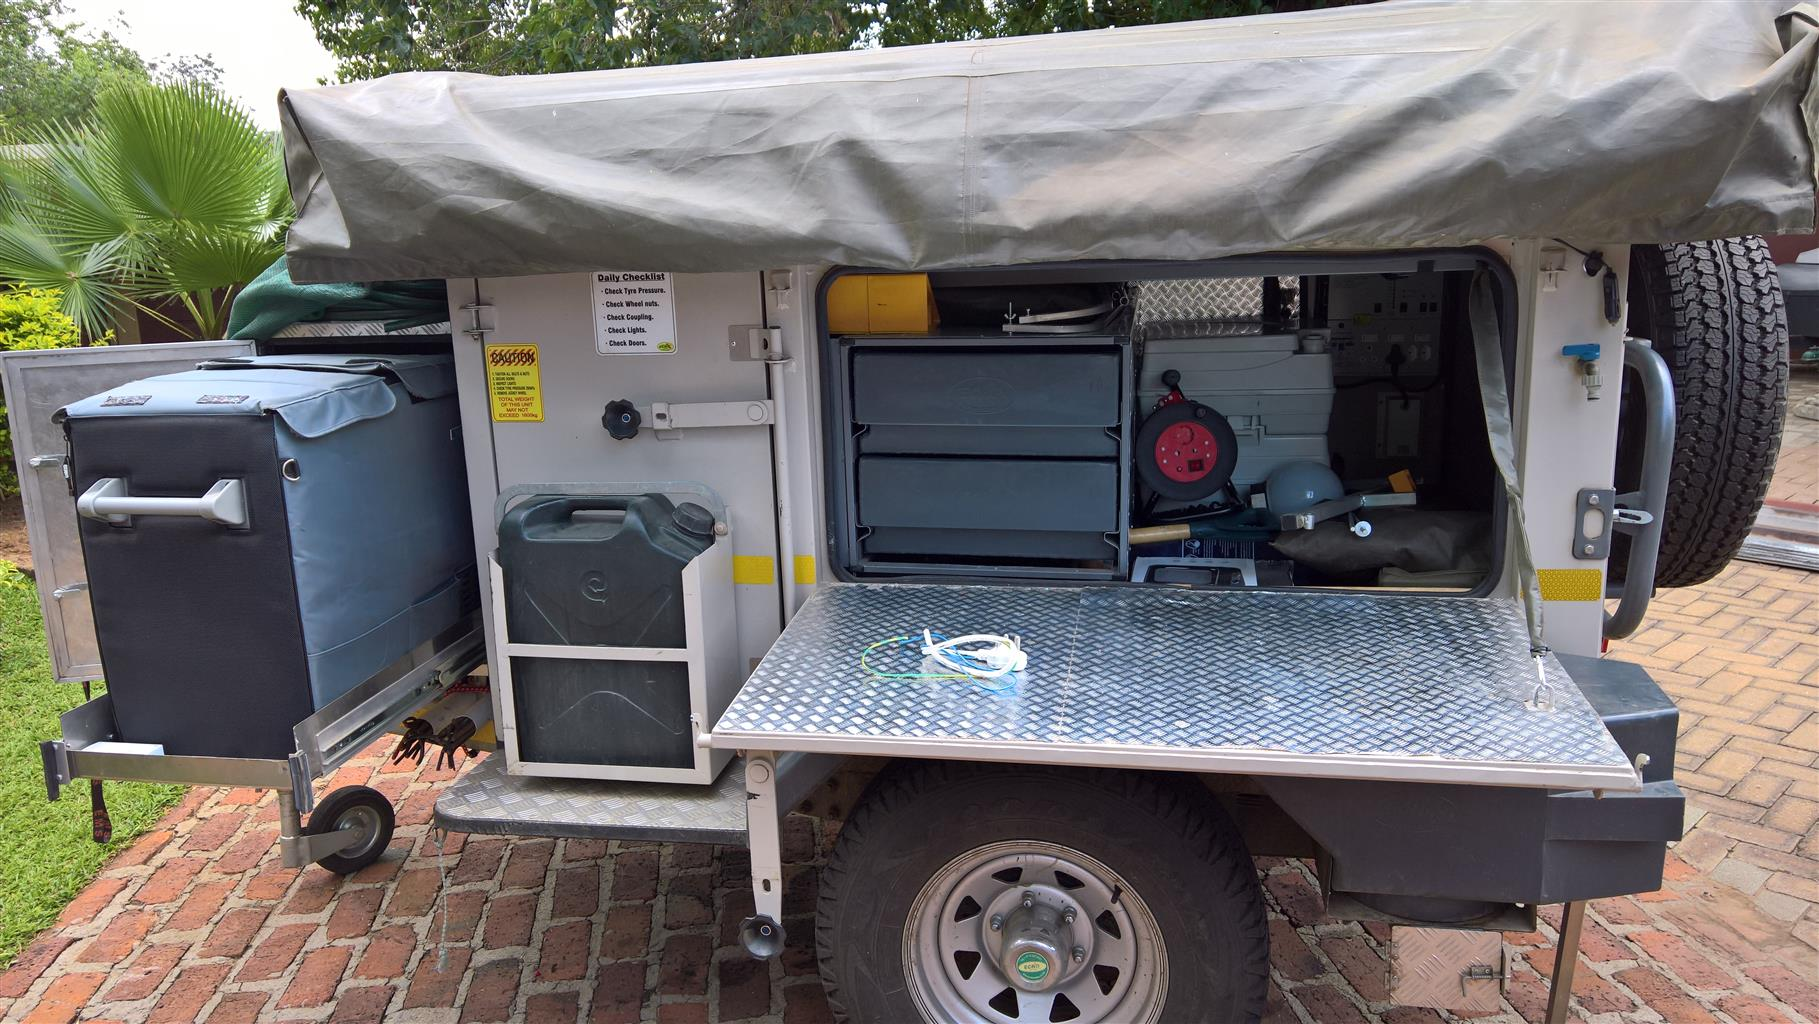 Echo 4x4 camping trailer for sale with lot of extras